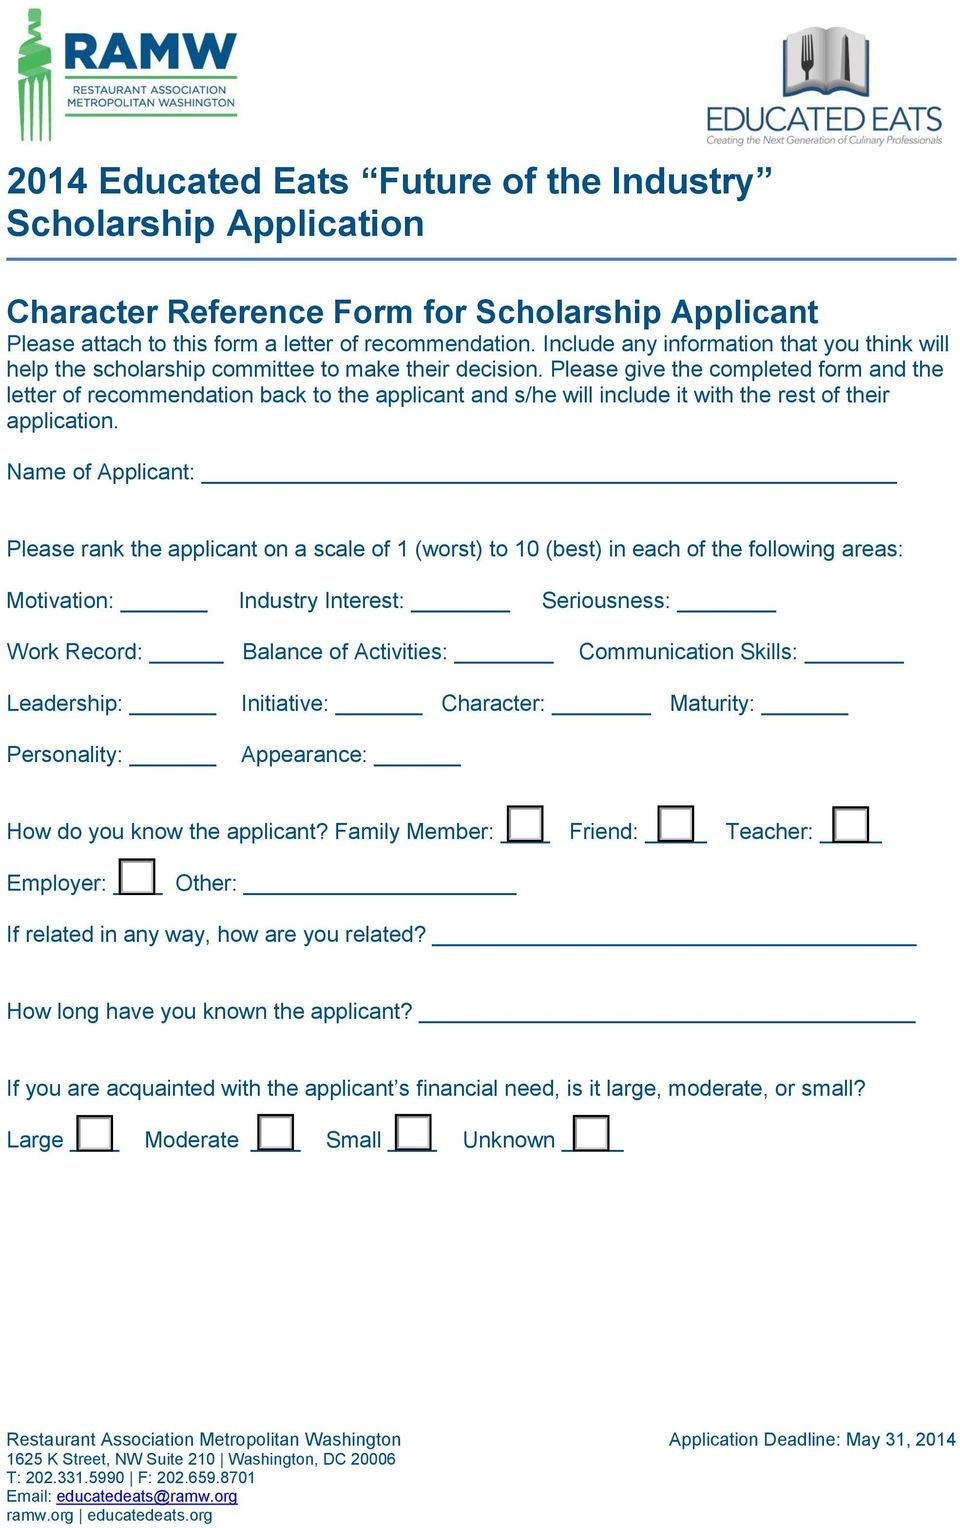 Please give the completed form and the letter of recommendation back to the applicant and s/he will include it with the rest of their application.